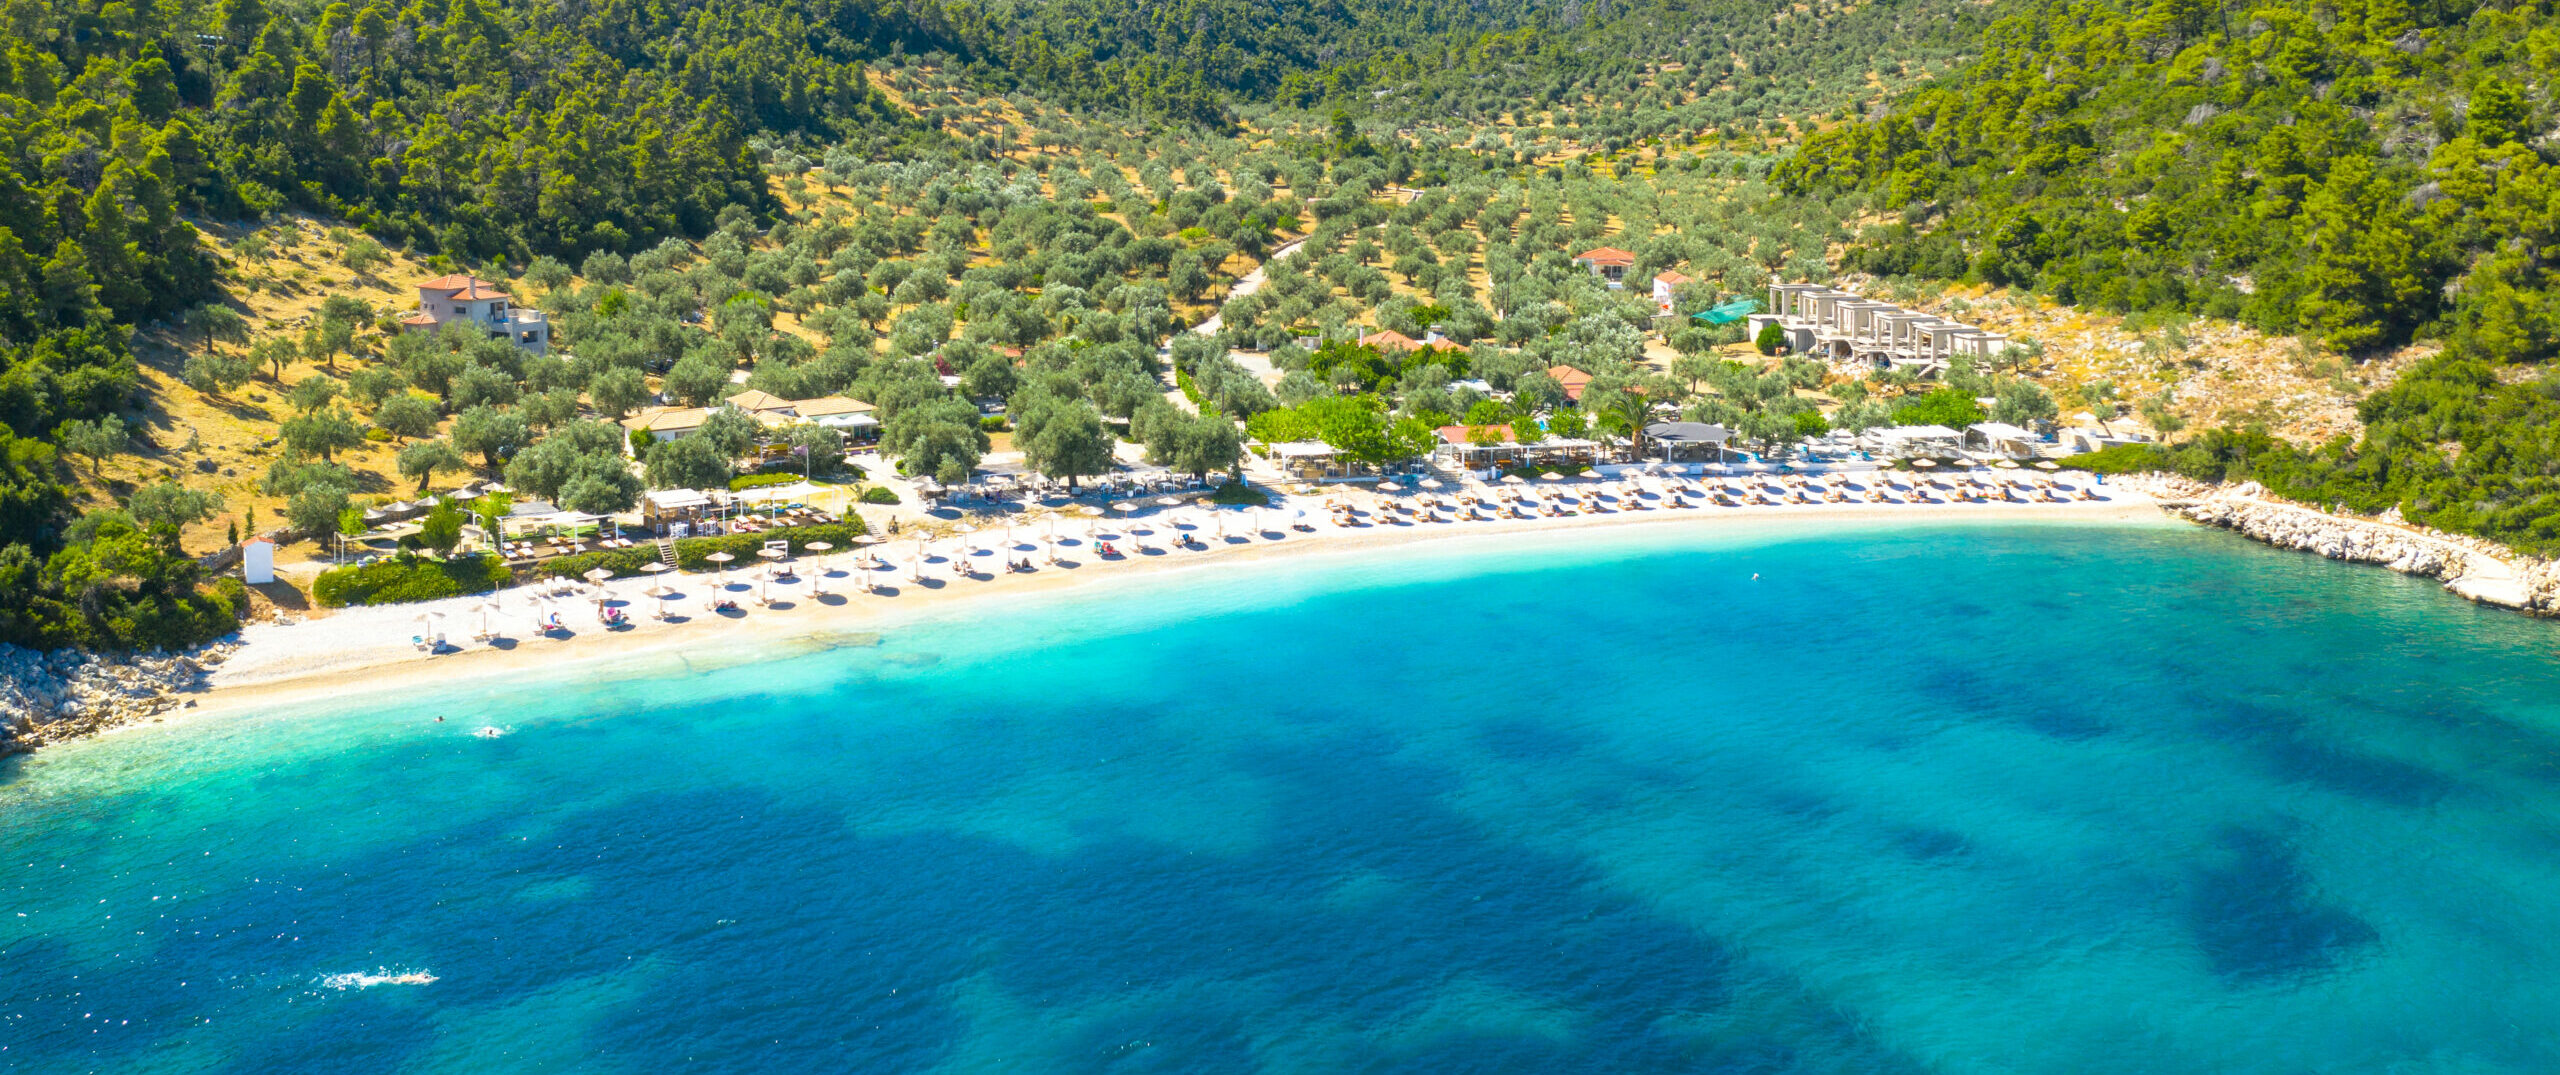 Alonissos: The green island with the underwater museum